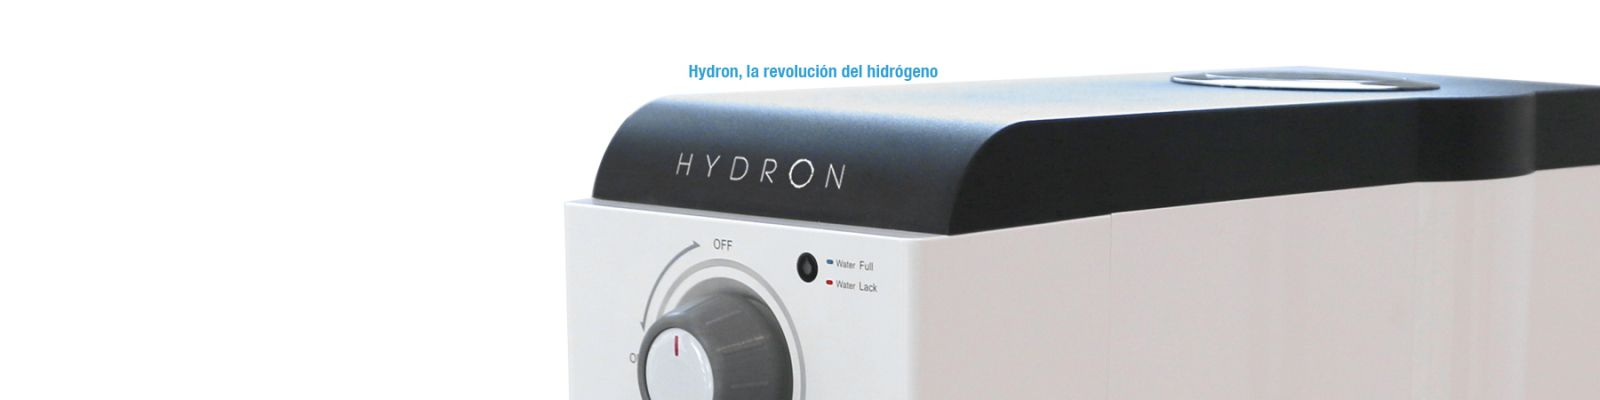 hуdron-waterlux.jpg